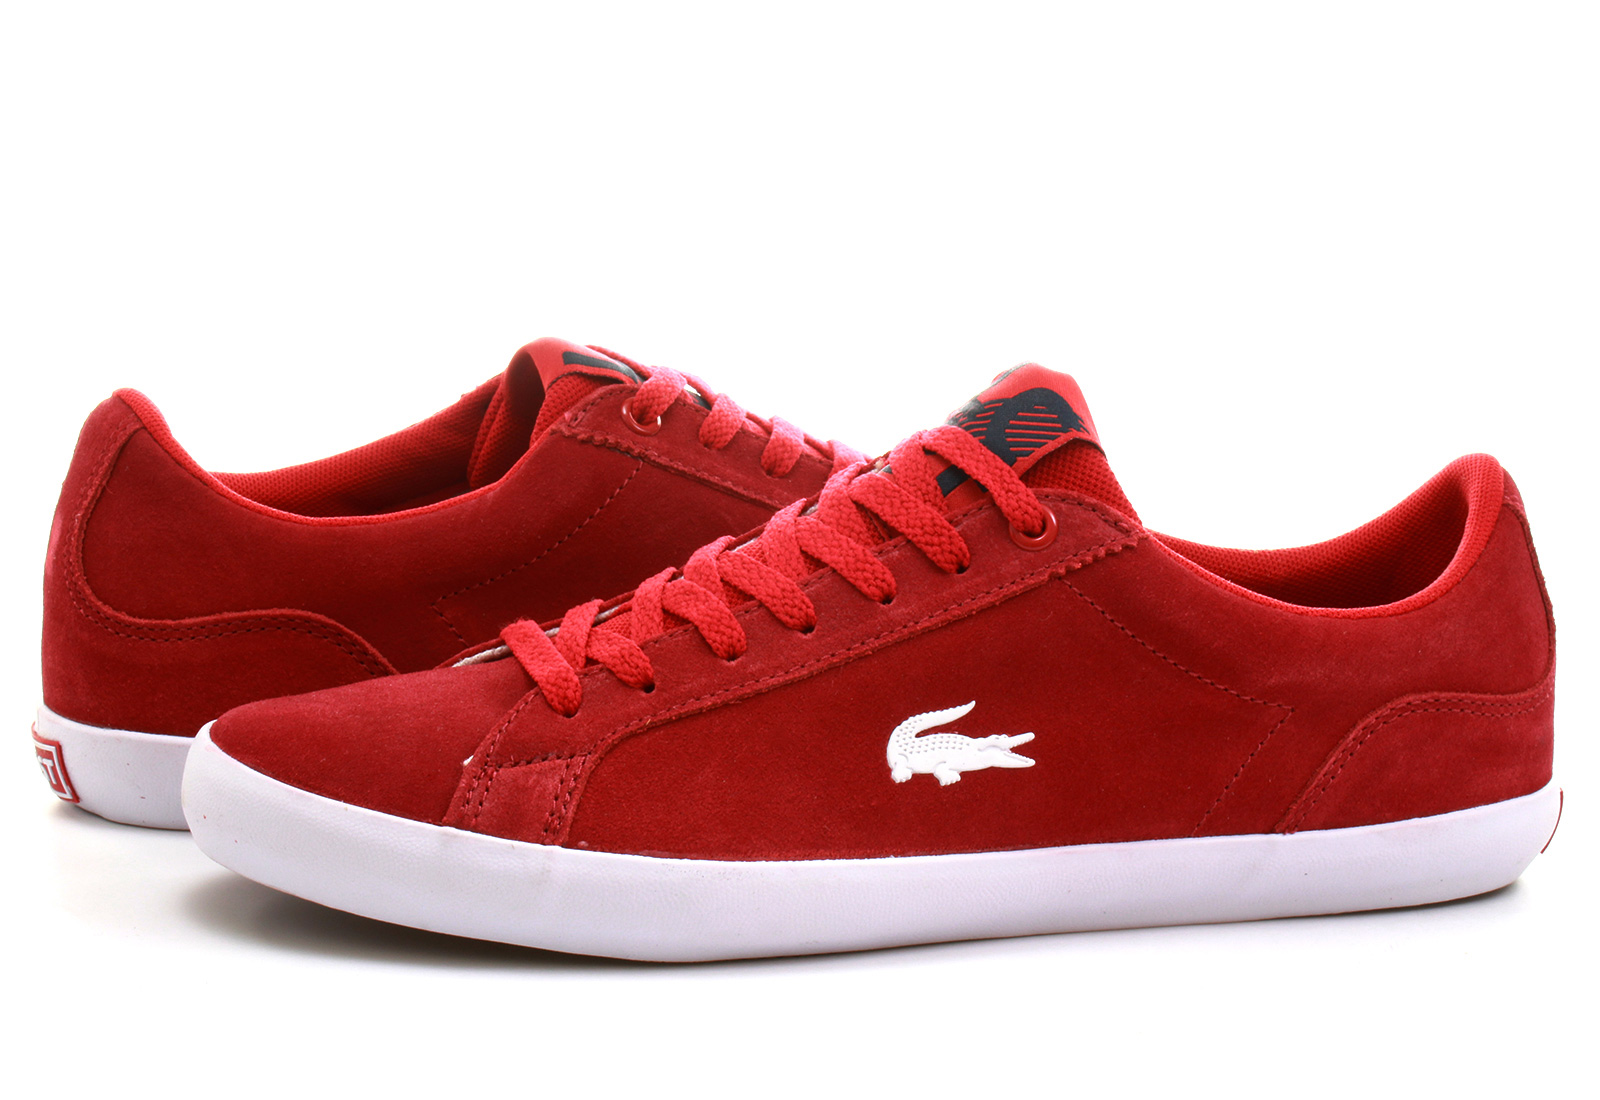 Shoes - Cresion - 141scm1004-17k - Online shop for sneakers, shoes ...